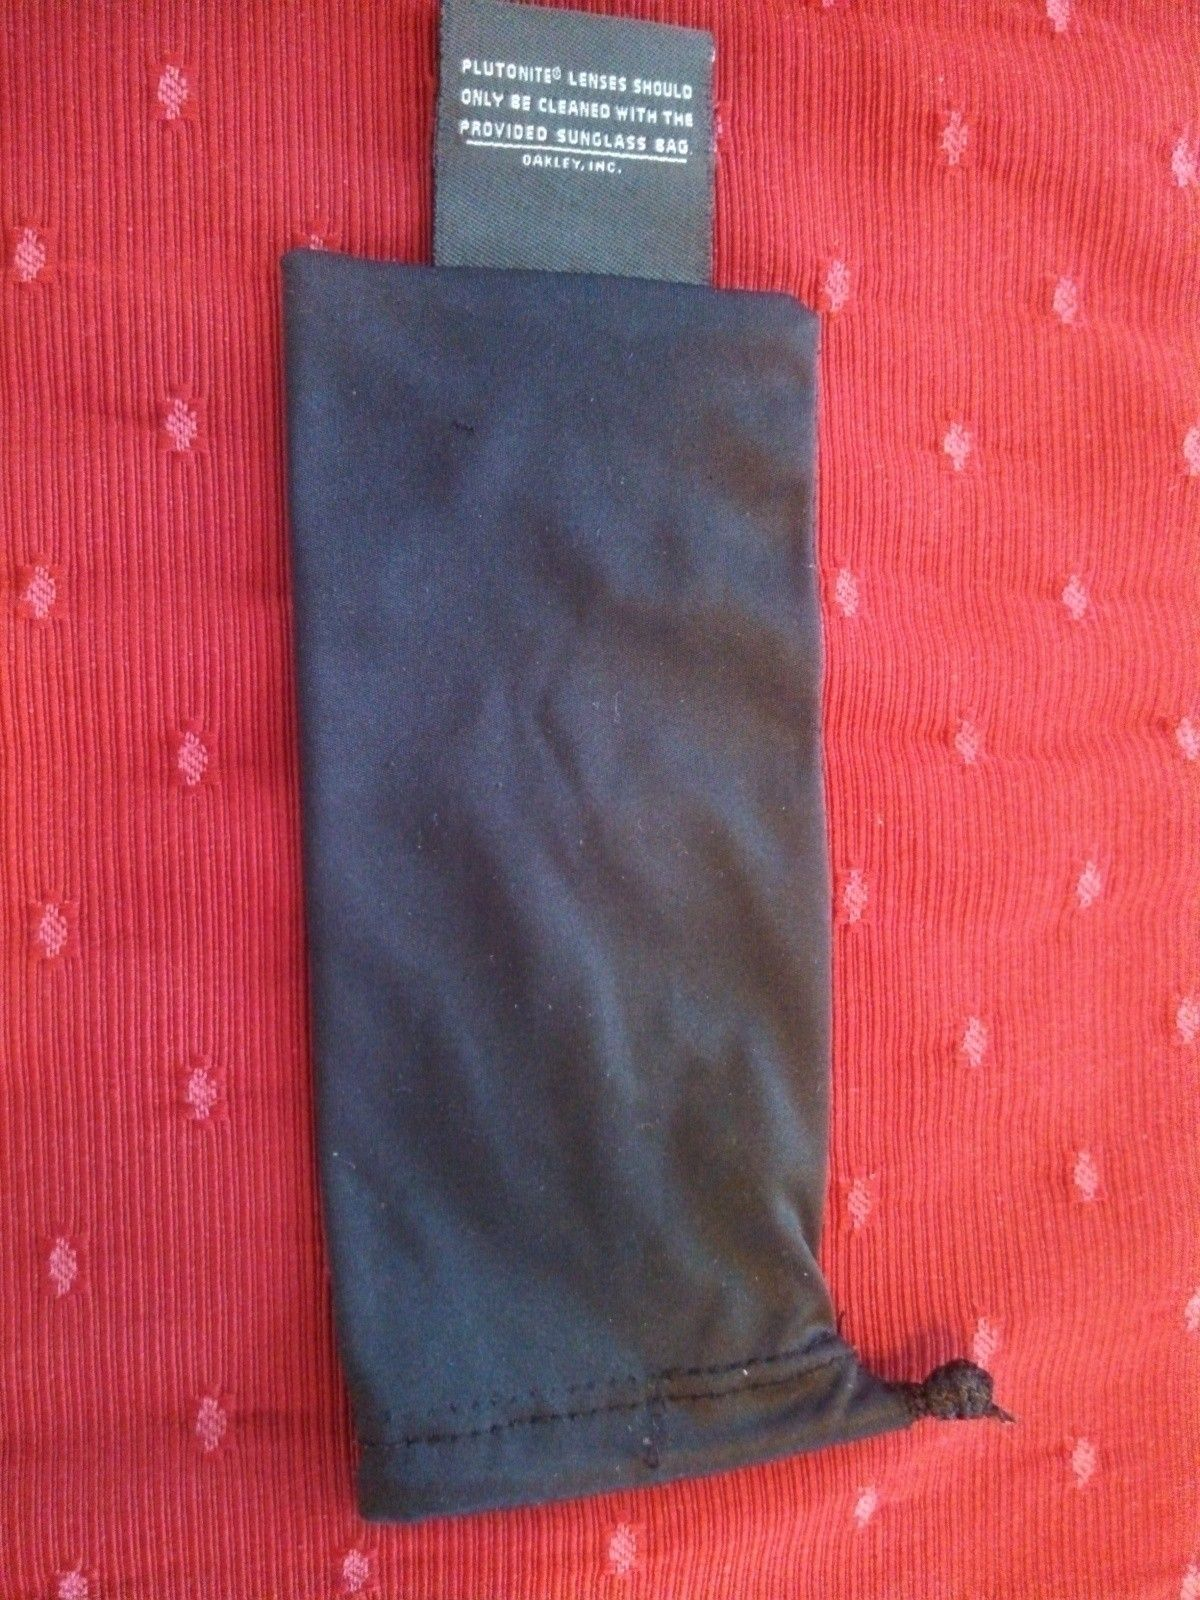 Is This Bag Older? Are Vintage Bags Collectible? - 2r4j67o.jpg